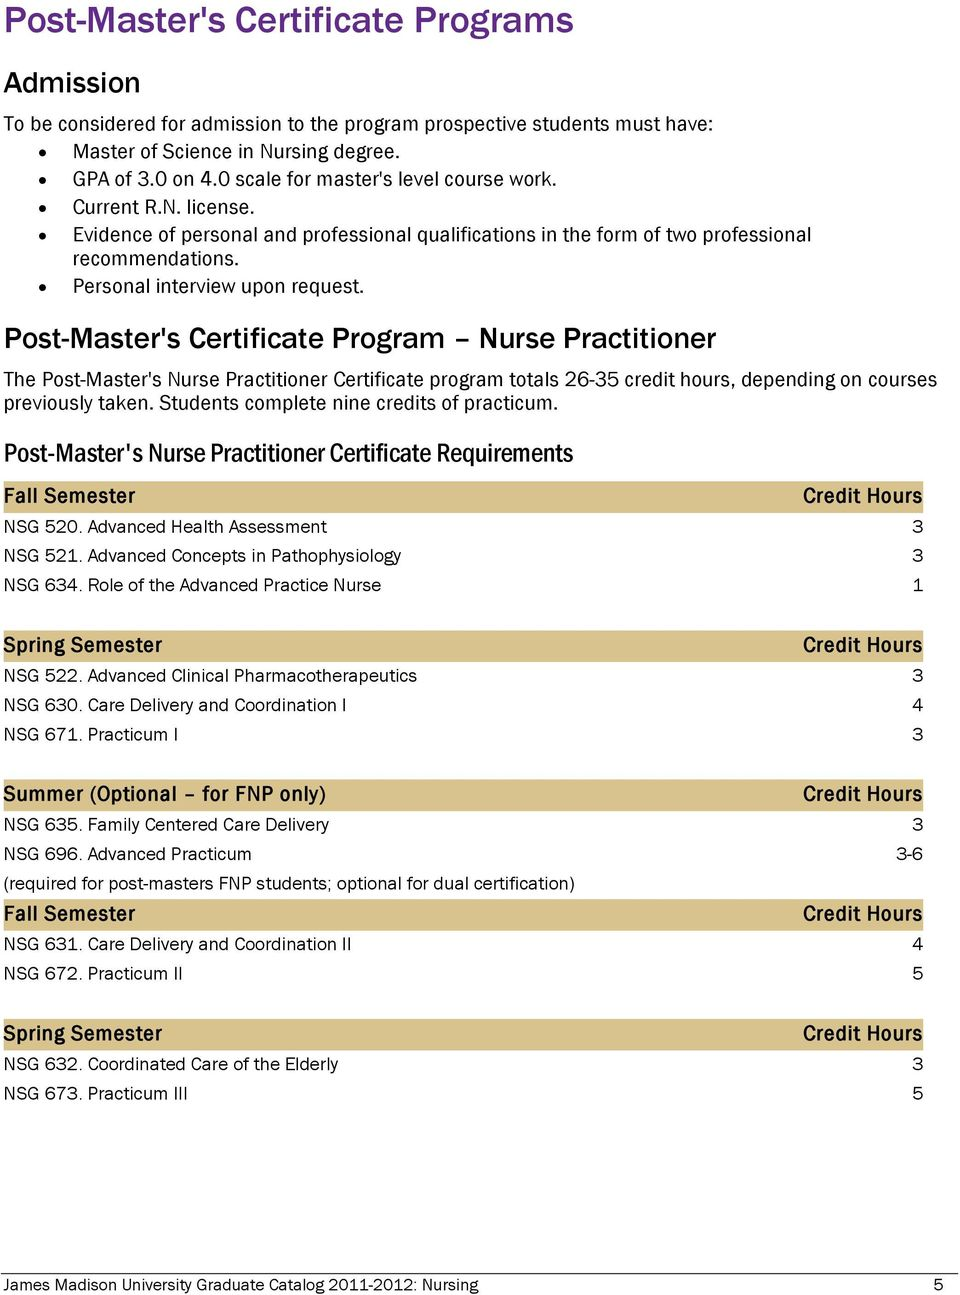 Post-Master's Certificate Program Nurse Practitioner The Post-Master's Nurse Practitioner Certificate program totals 26-35 credit hours, depending on courses previously taken.